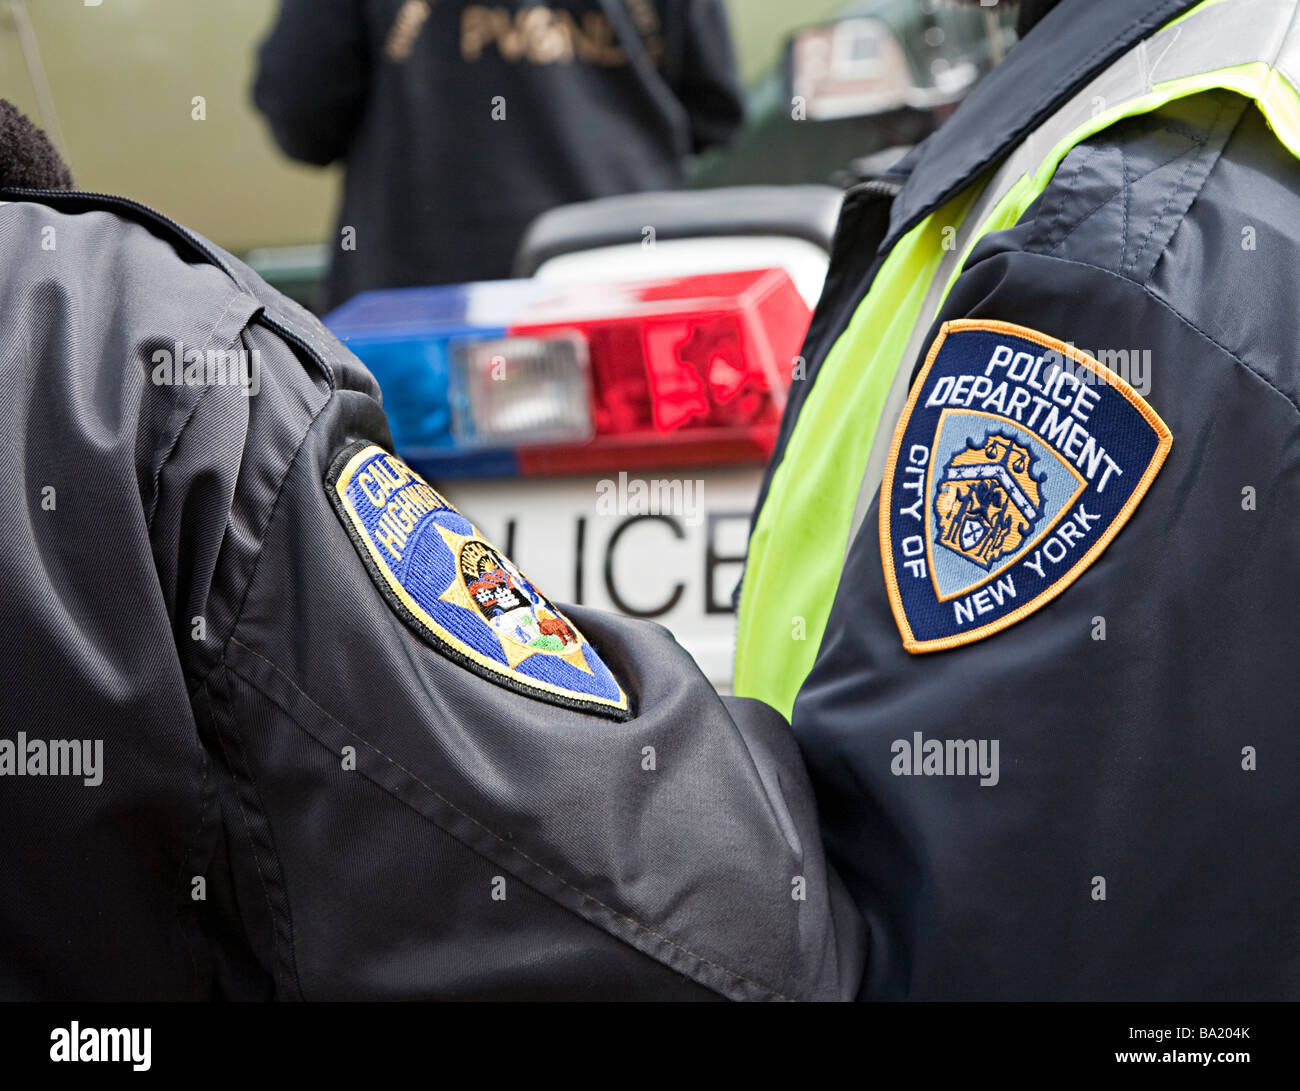 two men wearing police badges on arm for california highway and